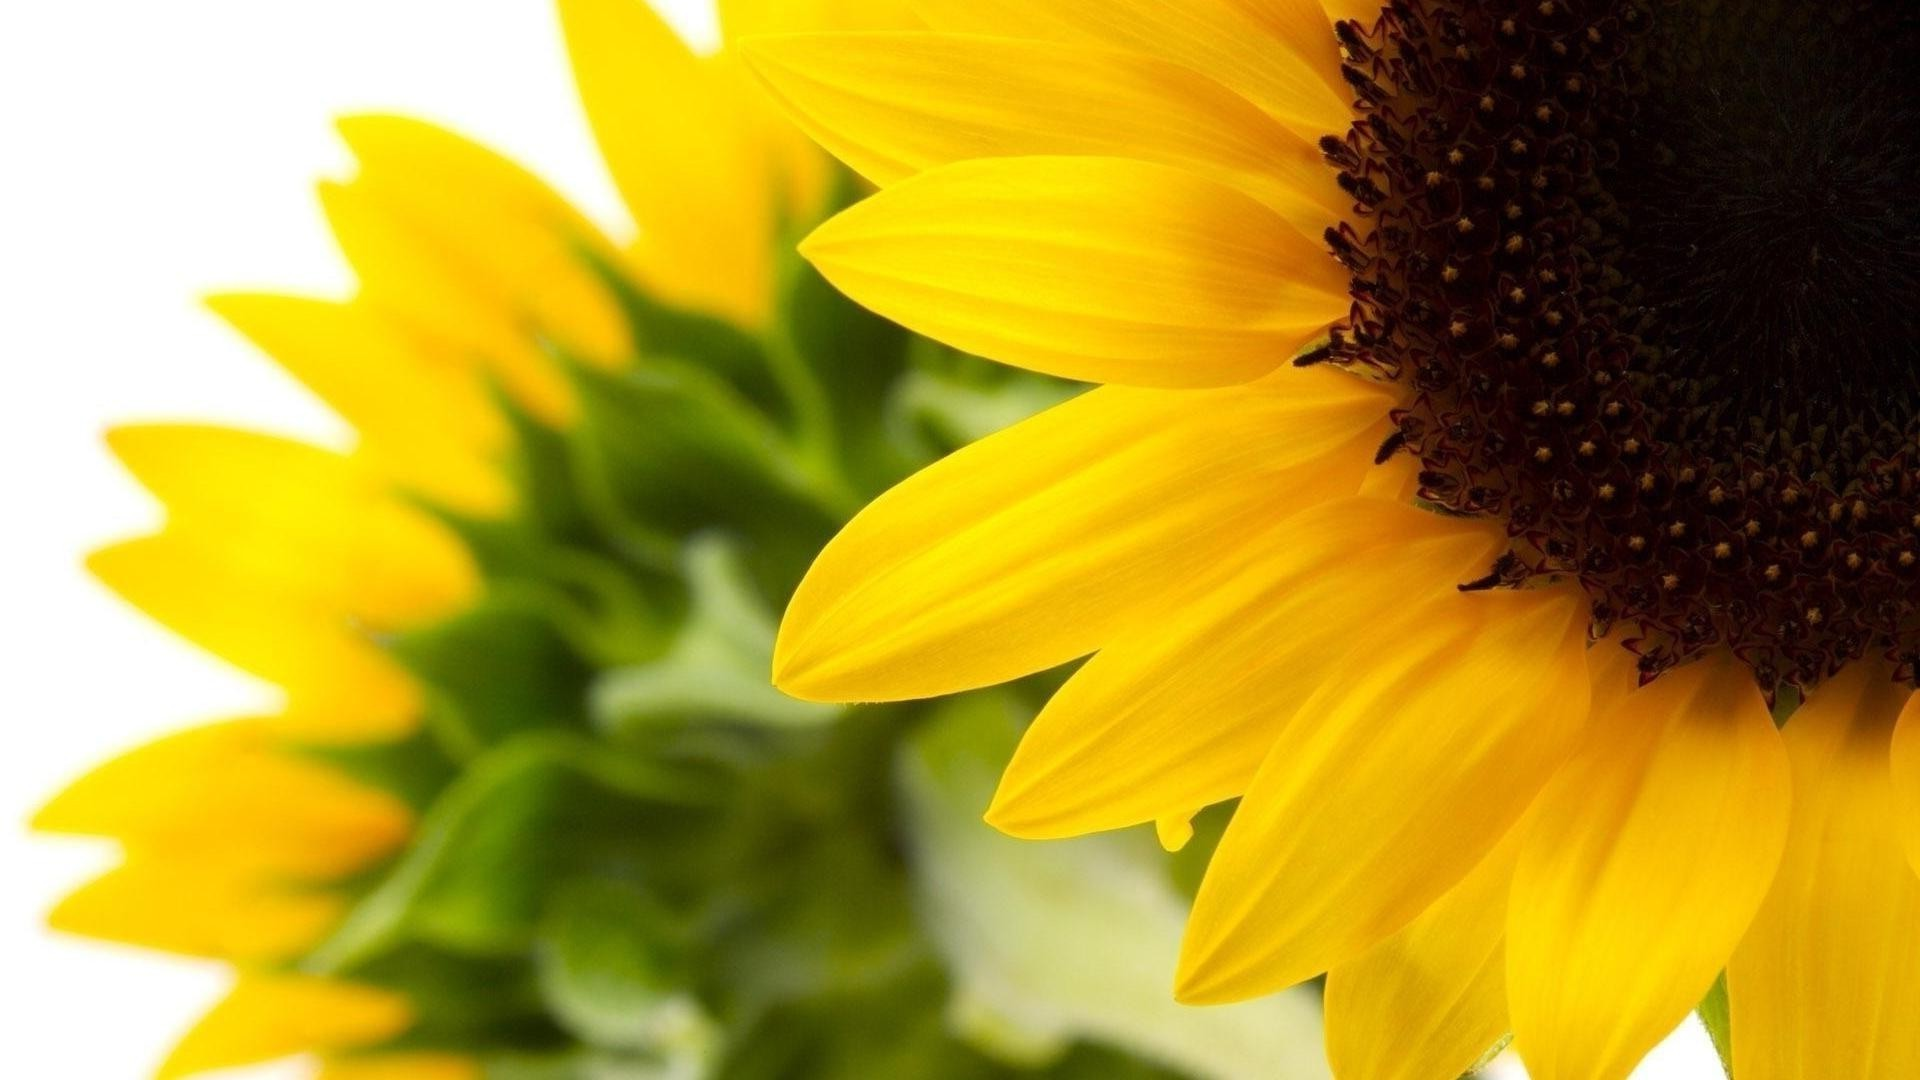 Sunflowers Desktop Wallpapers For Free